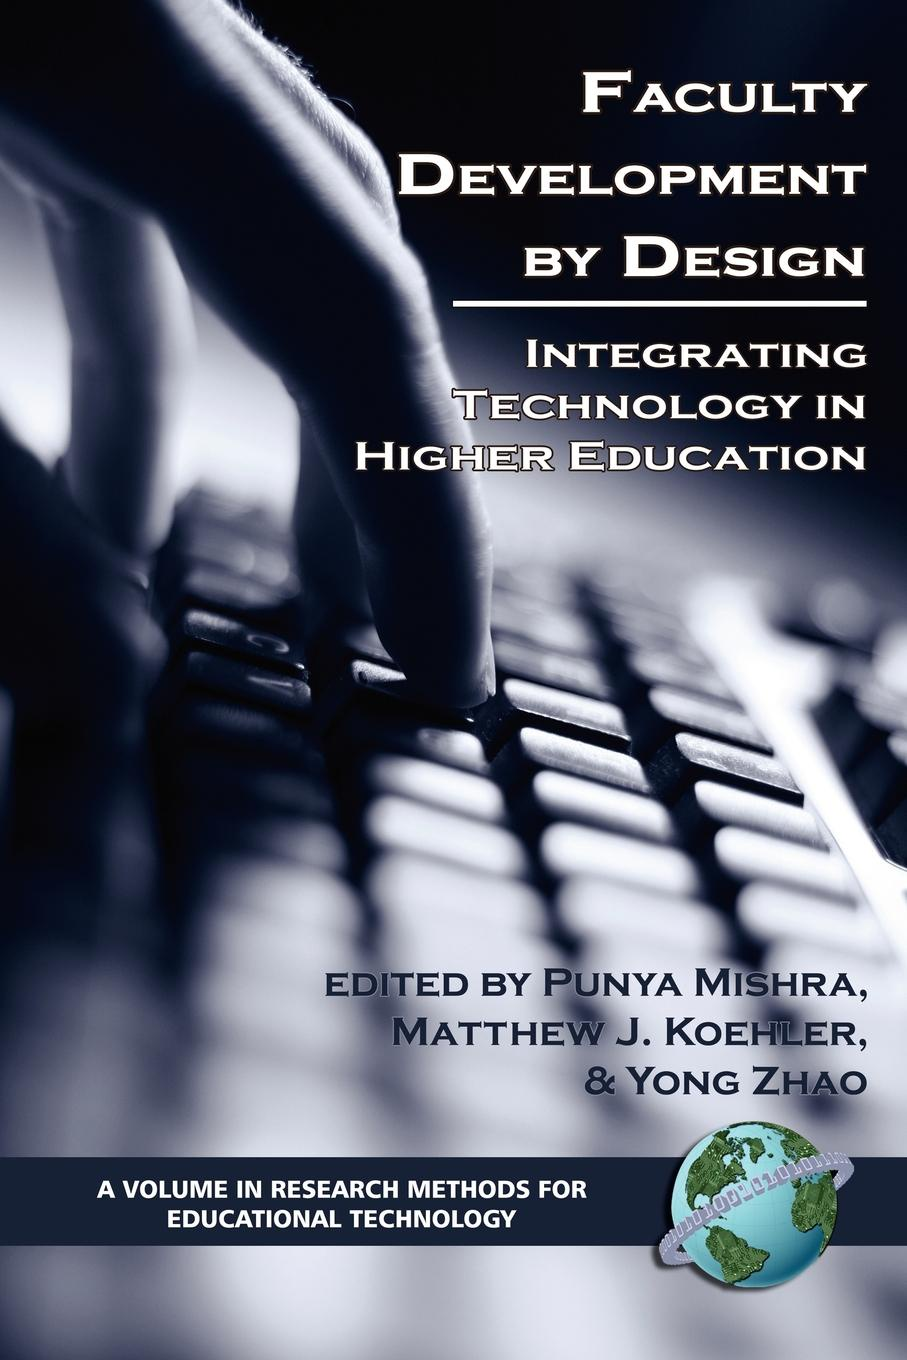 Faculty Development by Design. Integrating Technology in Higher Education (PB) cross national information and communication technology policies and practices in education revised second edition pb